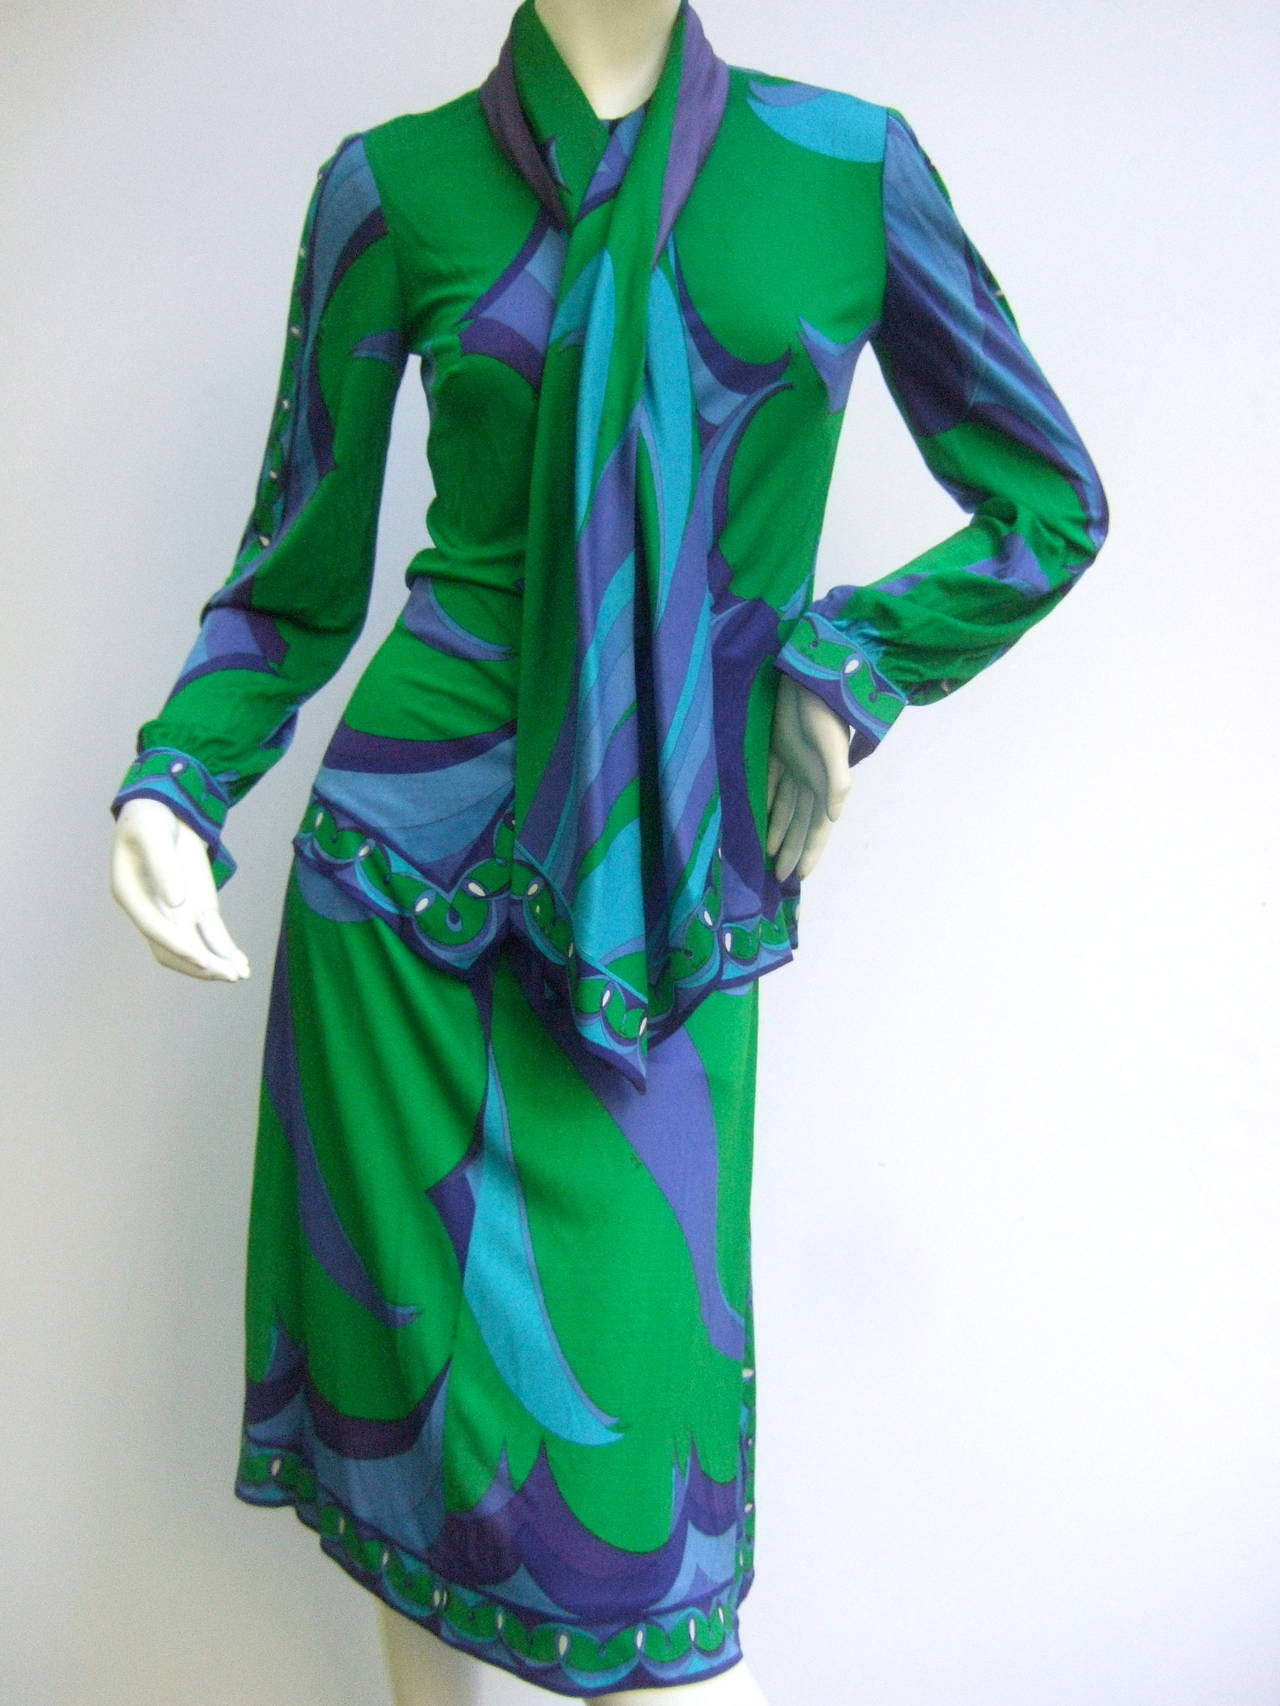 EMILIO PUCCI Silk Jersey Blend Blouse & Skirt Set c 1970 10